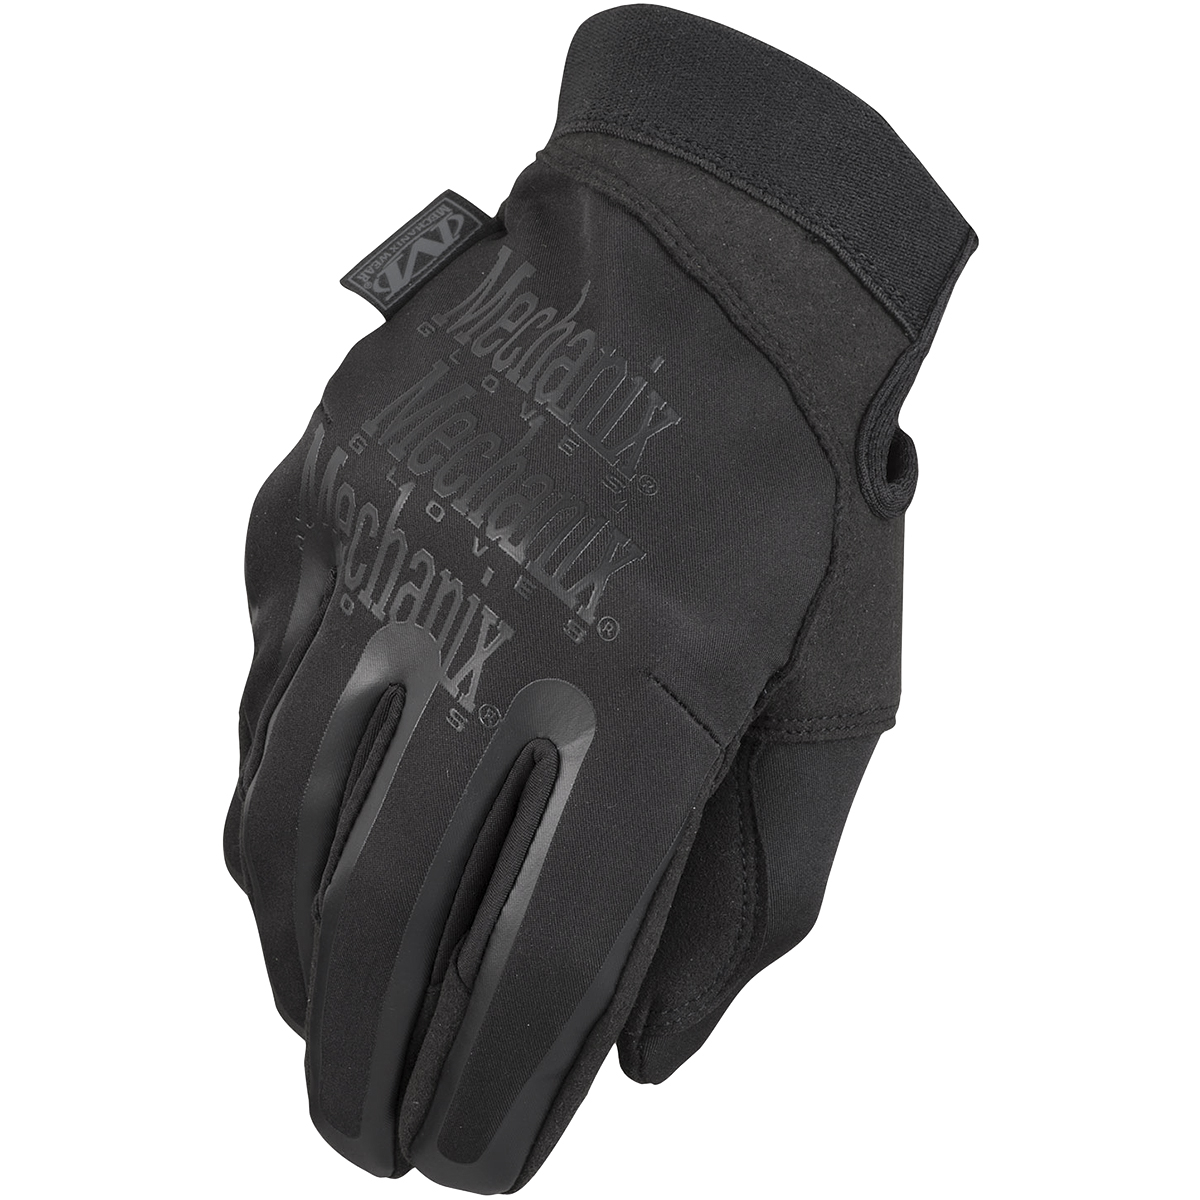 Shop for Work Gloves in Personal Protective Equipment. Buy products such as LPL-2PK, 2 Pair Value Pack, Genuine Cow Suede Leather Palm Work Glove at Walmart and save.